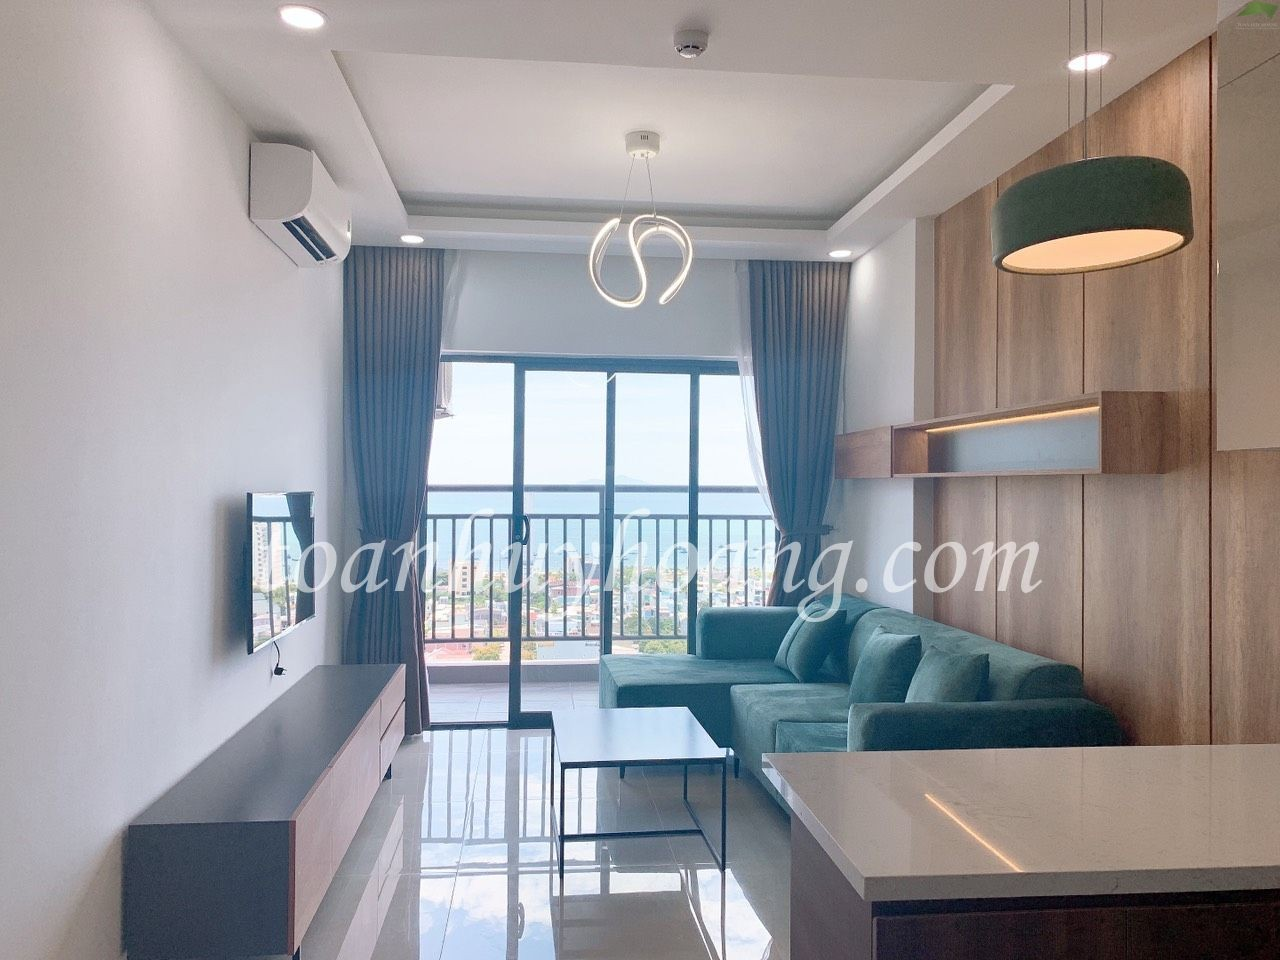 A Property for rent Danang